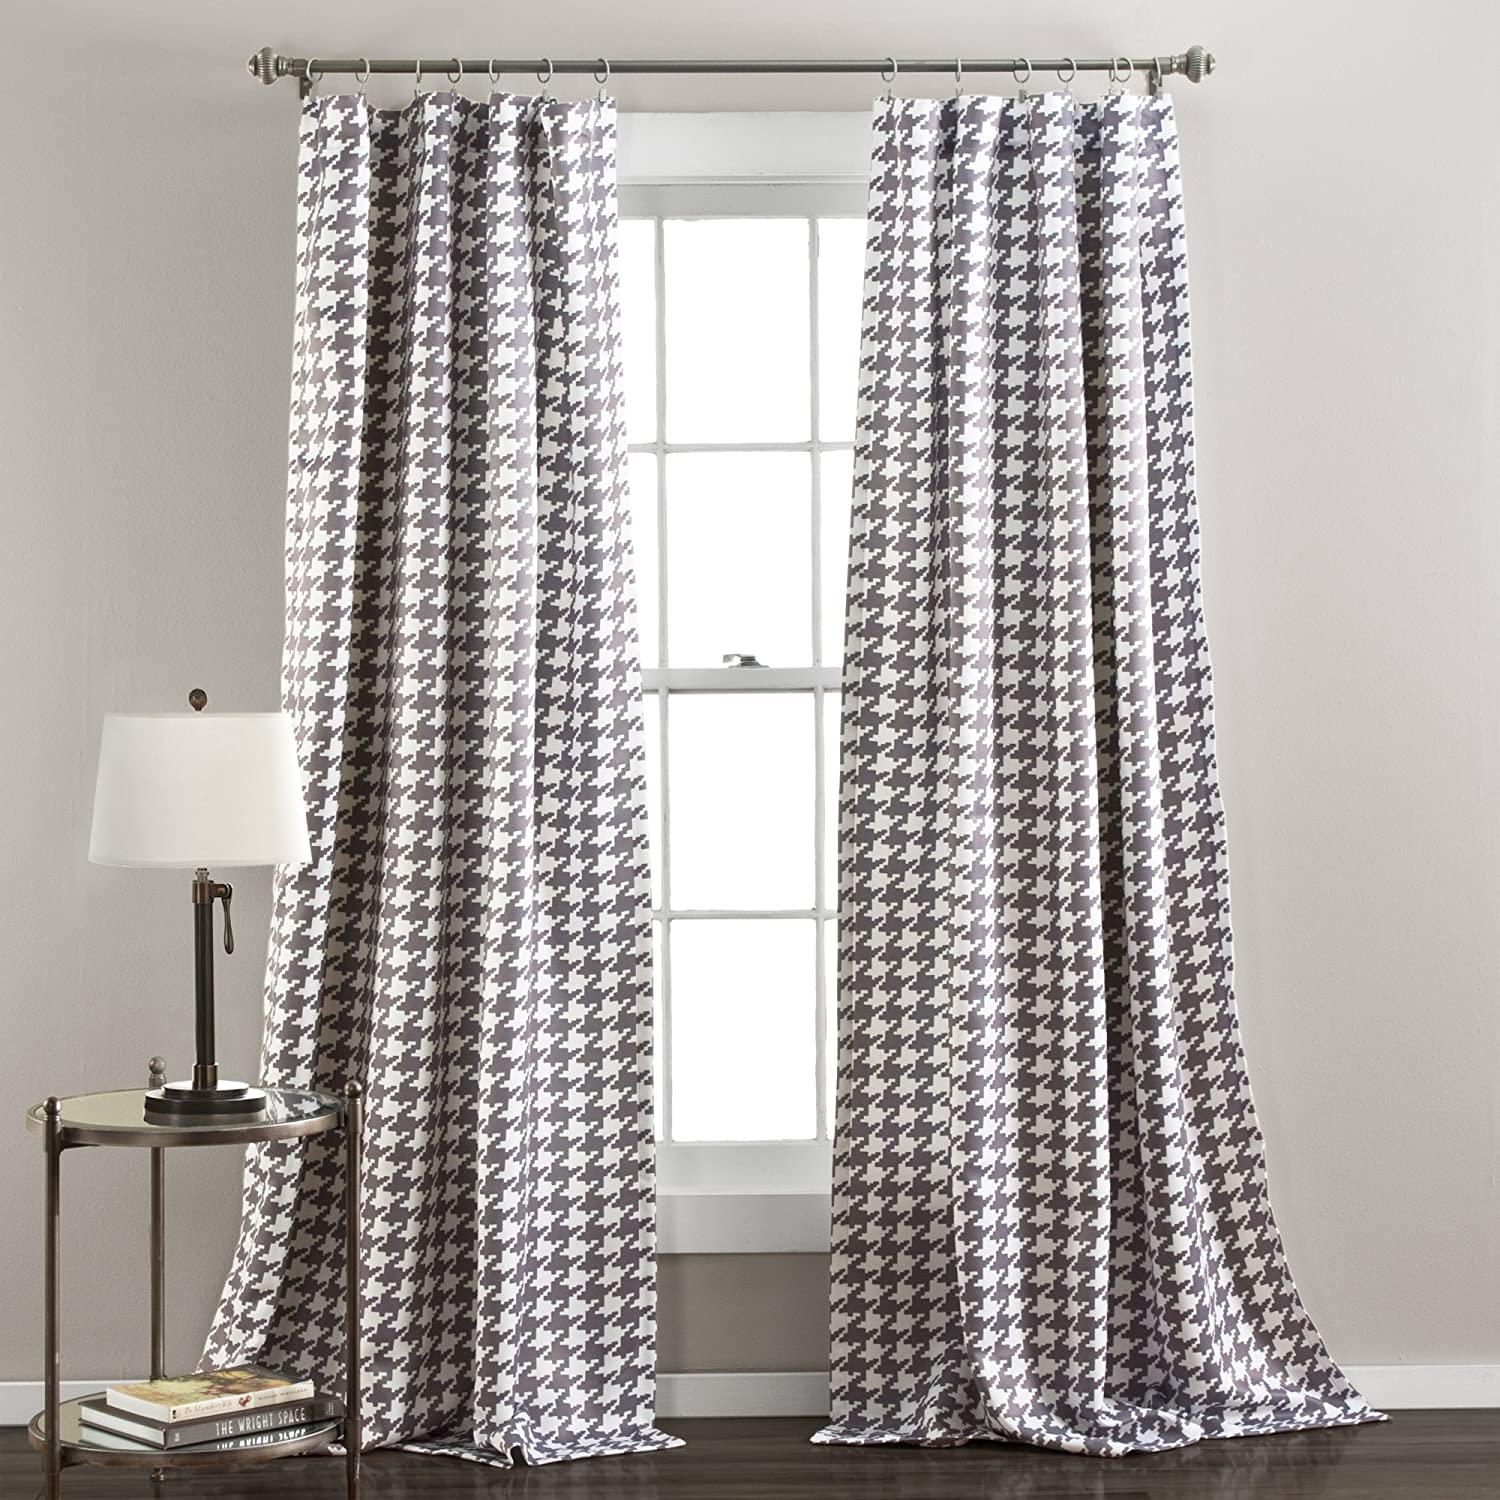 Amazon Lush Decor Houndstooth Window Curtain Panel Set Of 2 84 X 50 Inches Gray Home Kitchen